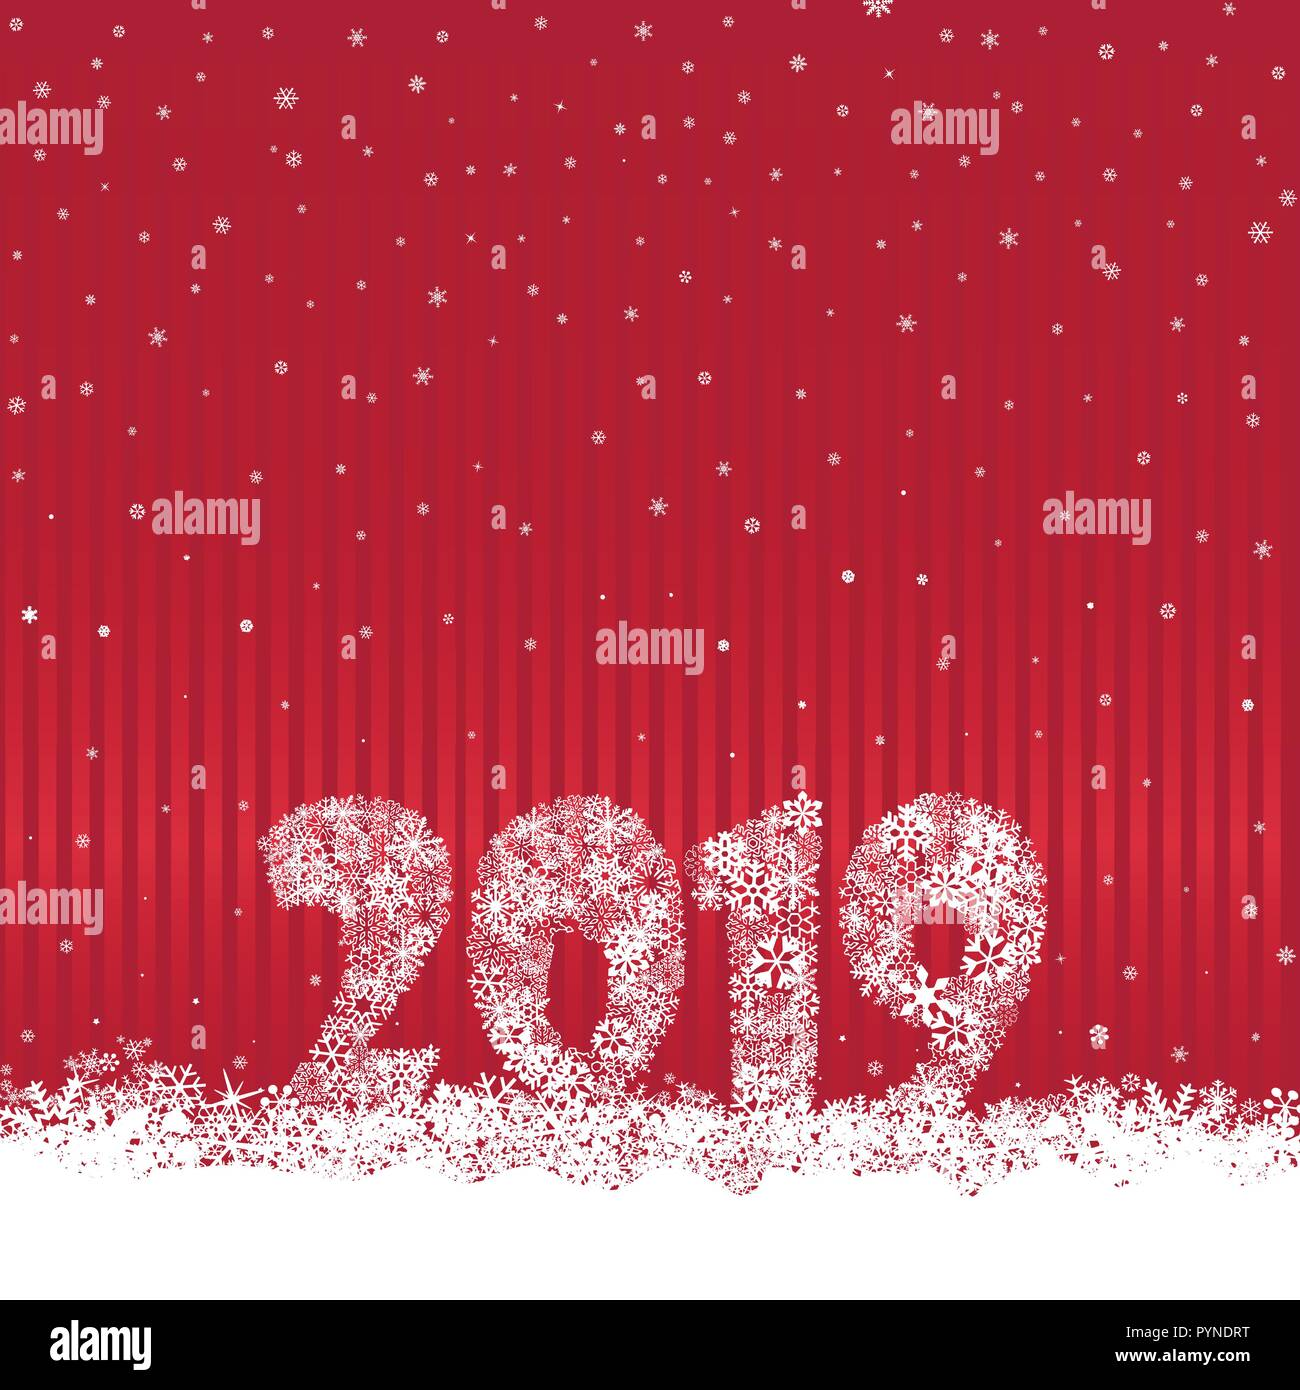 happy new year 2019 snow winter holiday red background christmas greeting card with lettering